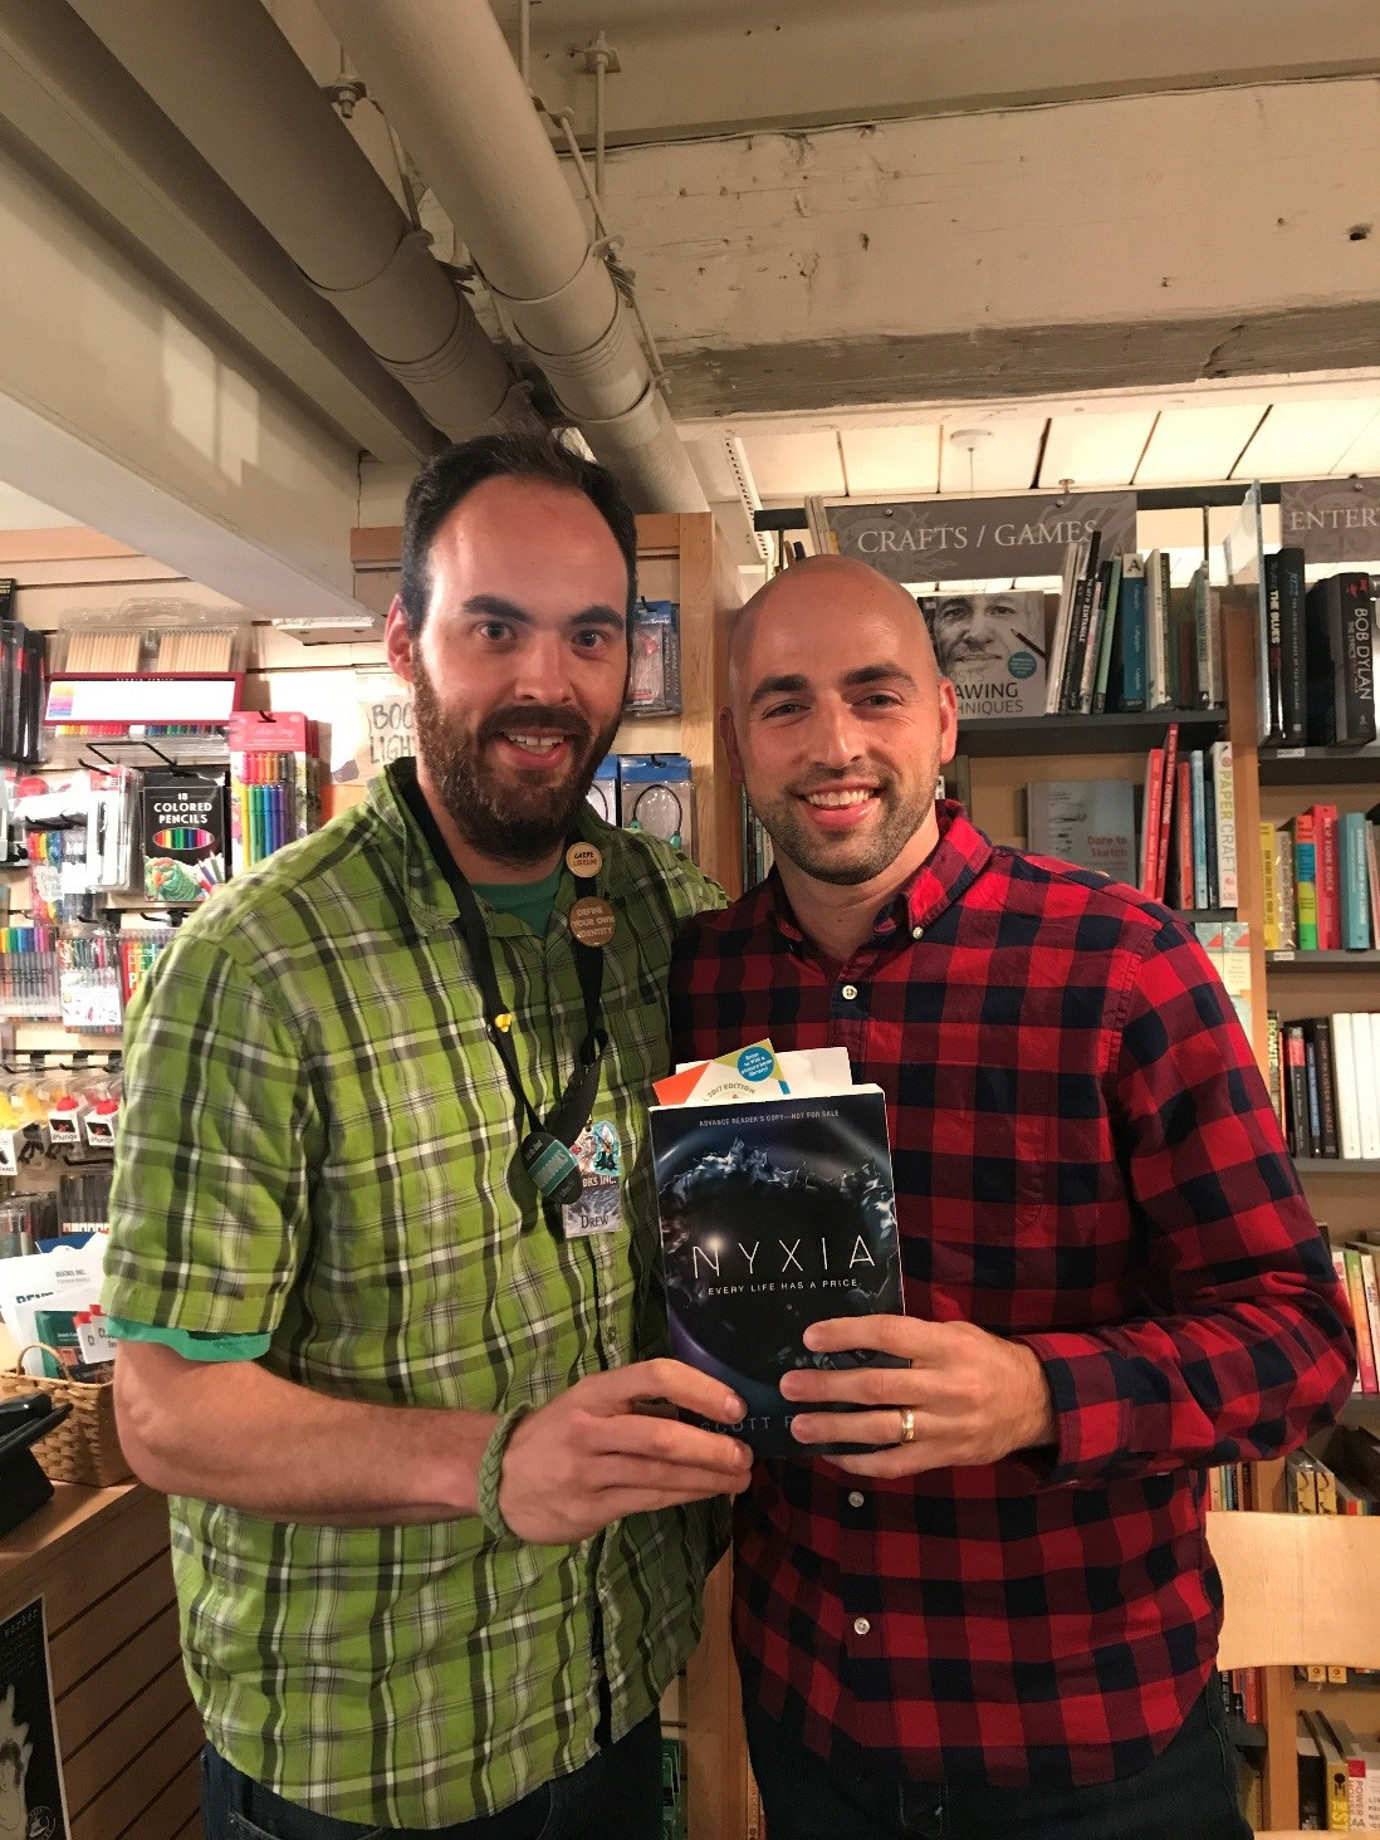 Books Inc. bookseller Drew poses with Scott Reintgen in celebration of <em>Nyxia</em> at our store in Palo Alto.